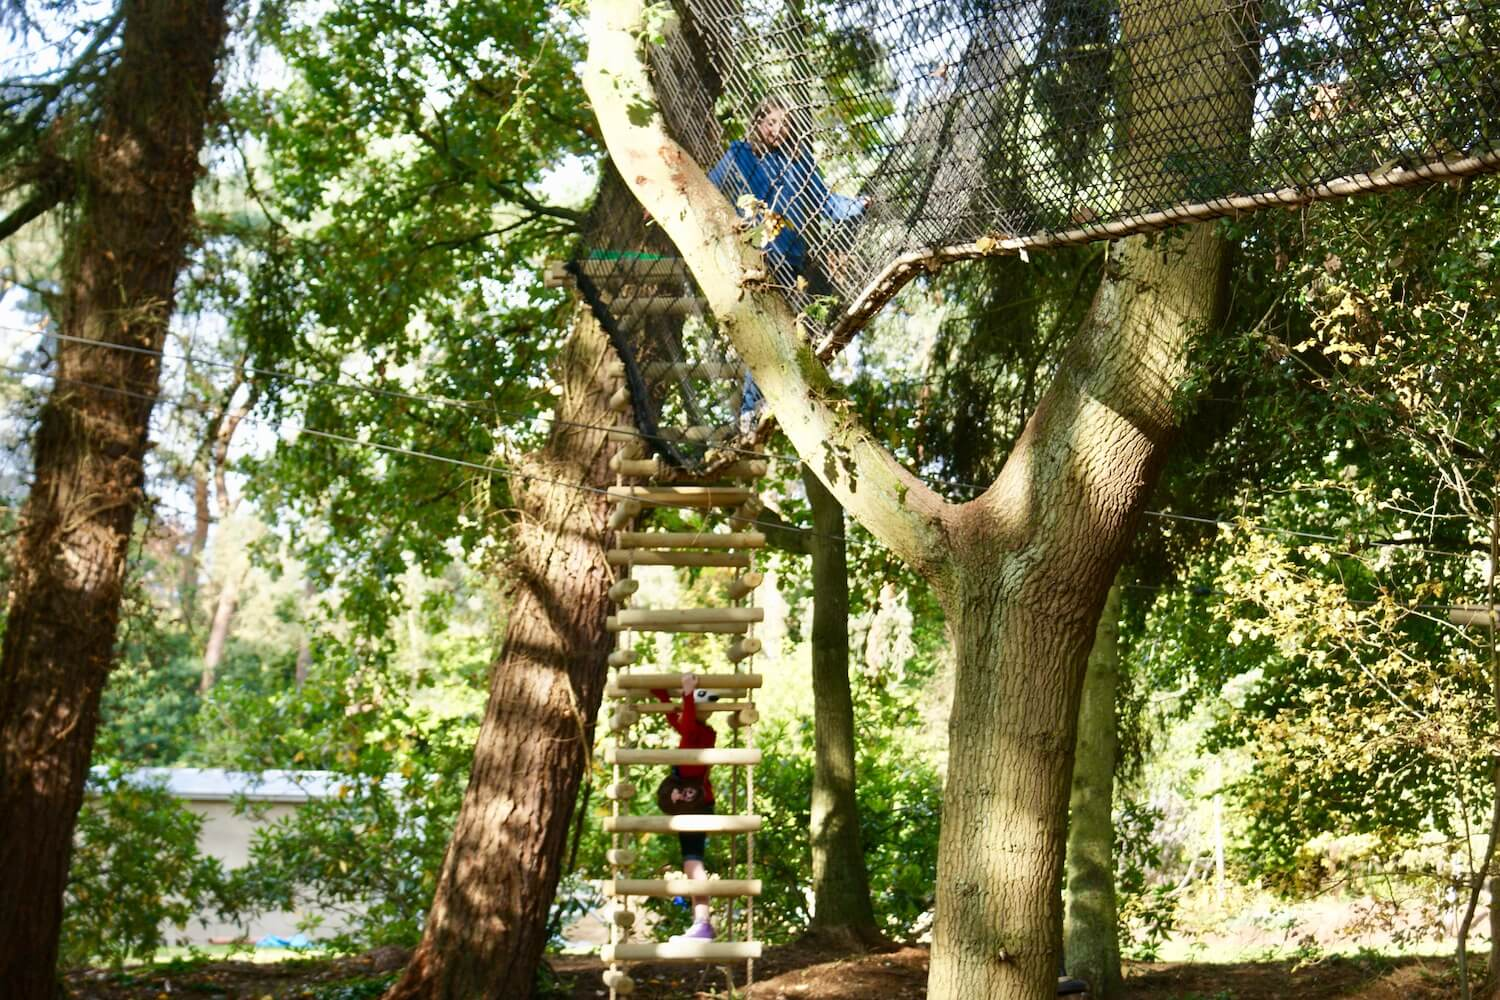 'Tree-Surfing' treehouses